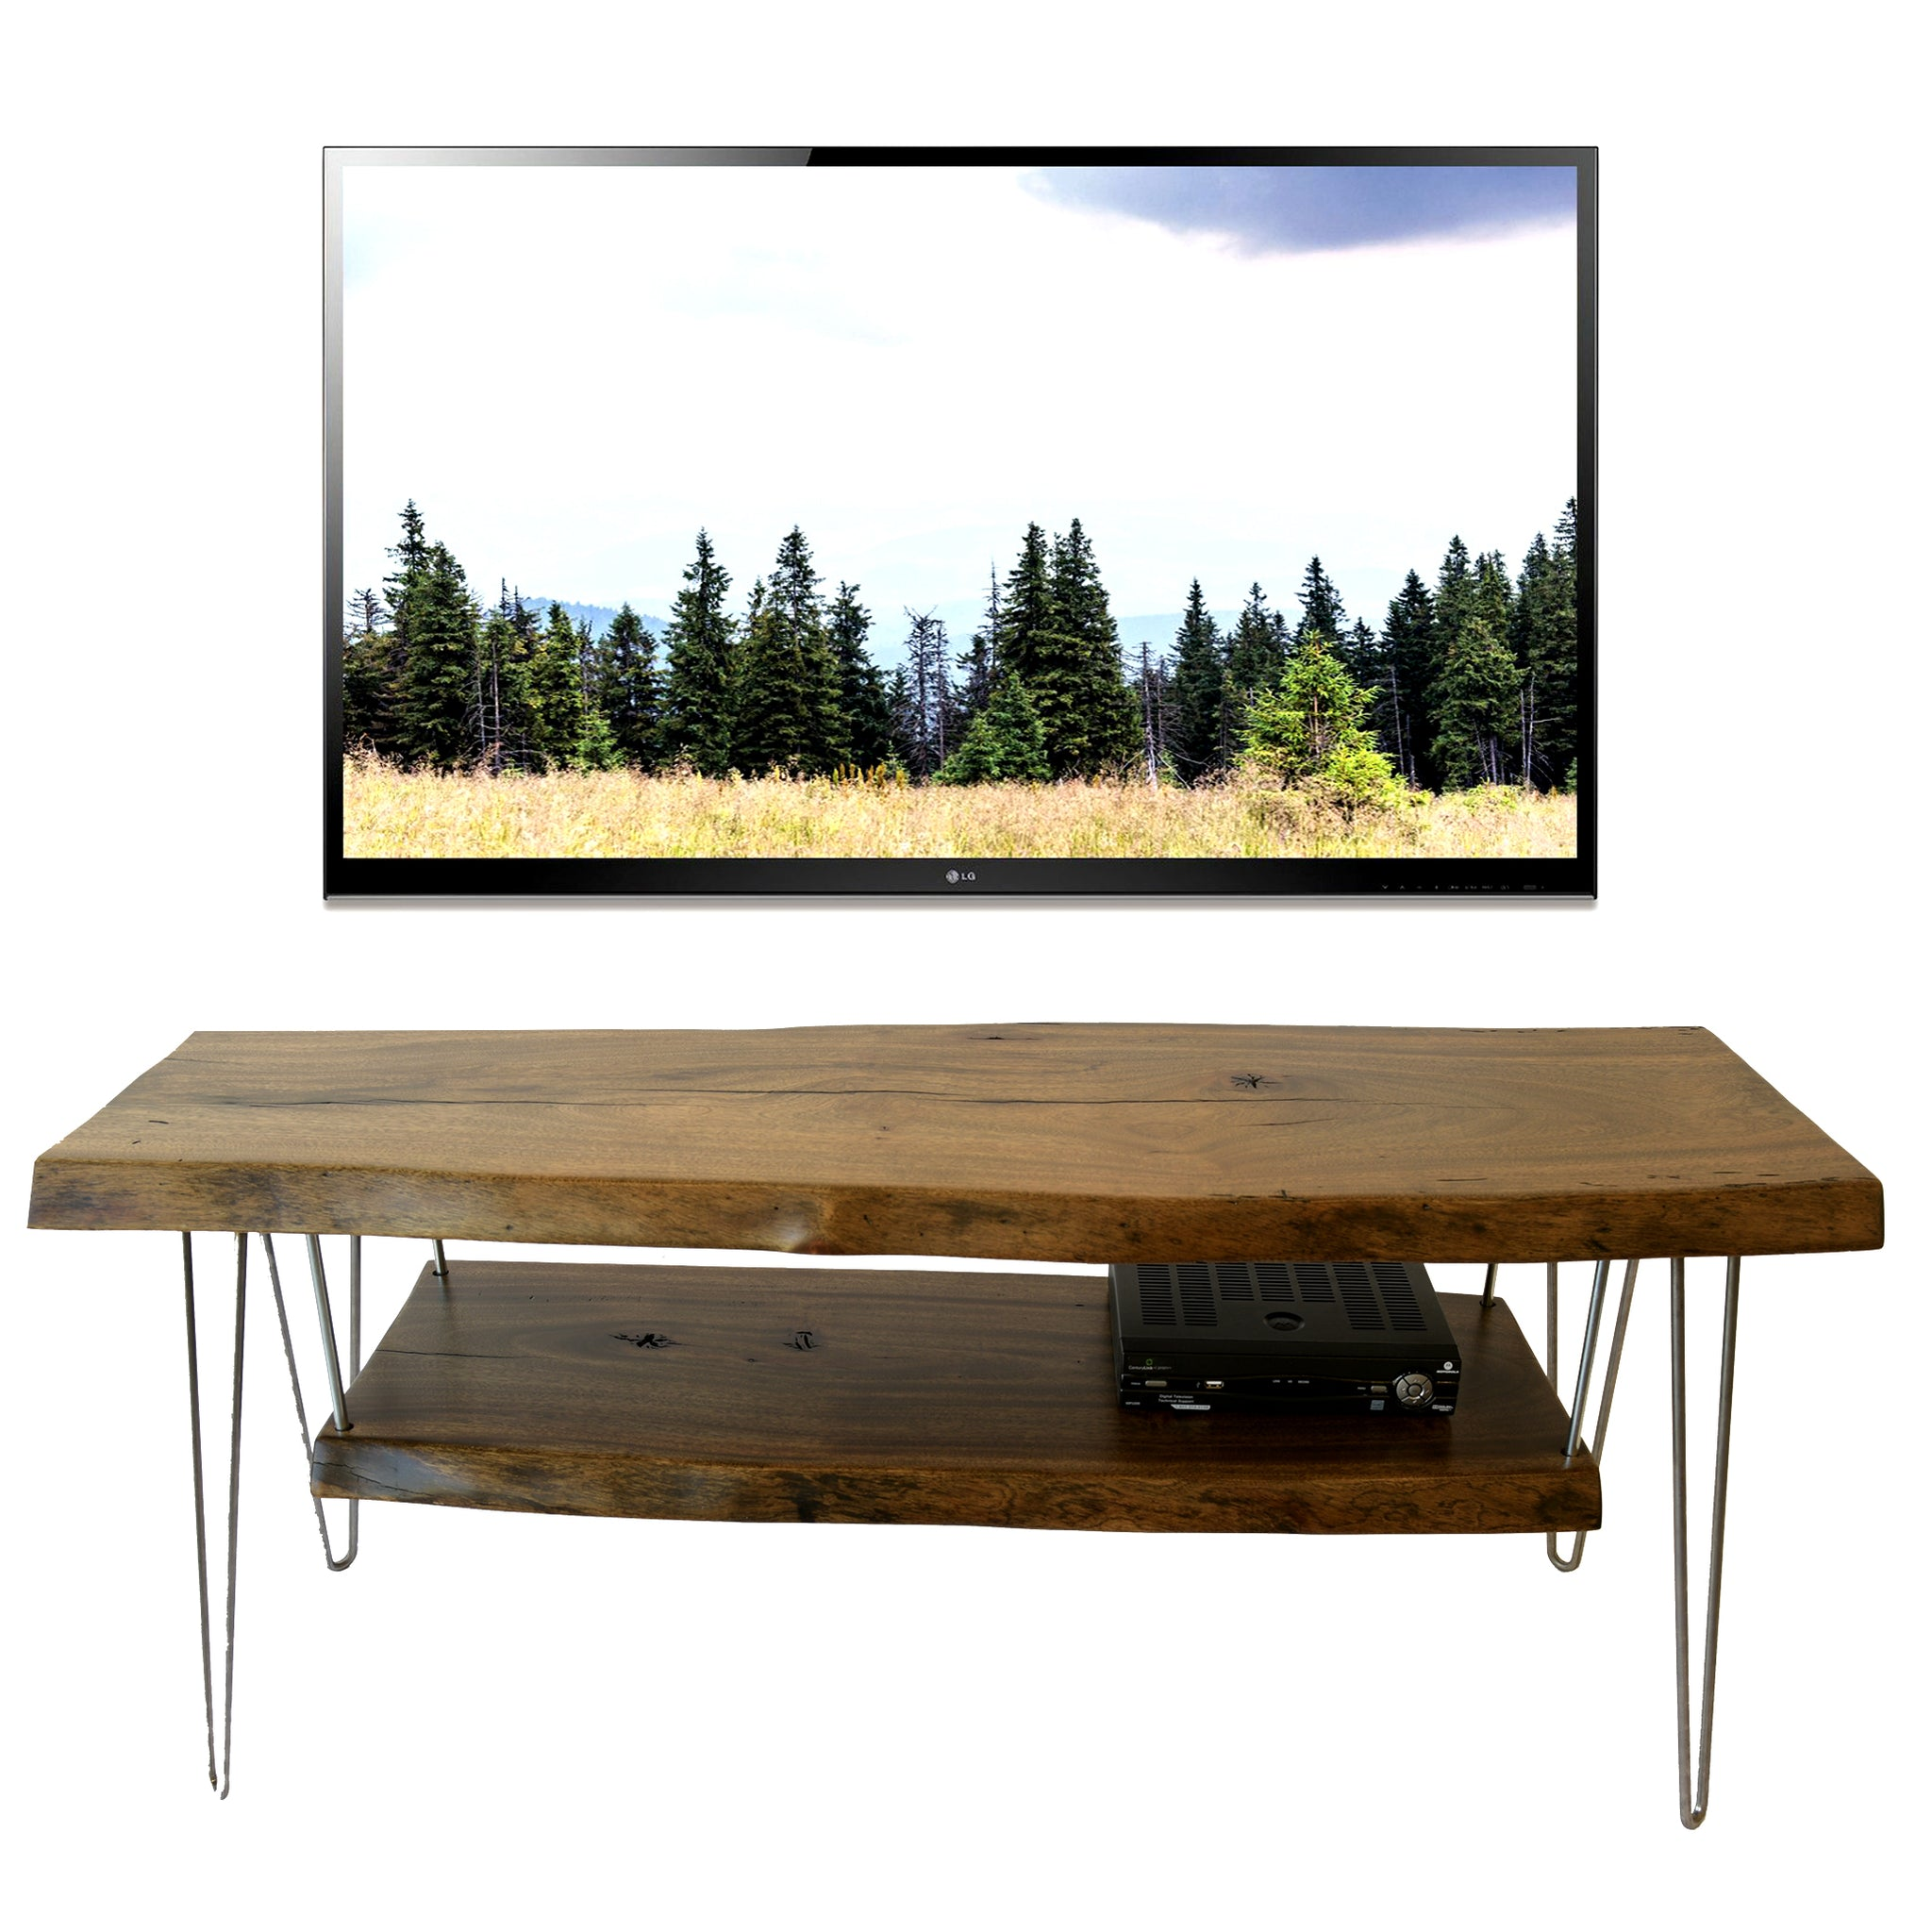 Reclaimed Wood Live Edge Slab TV Stand